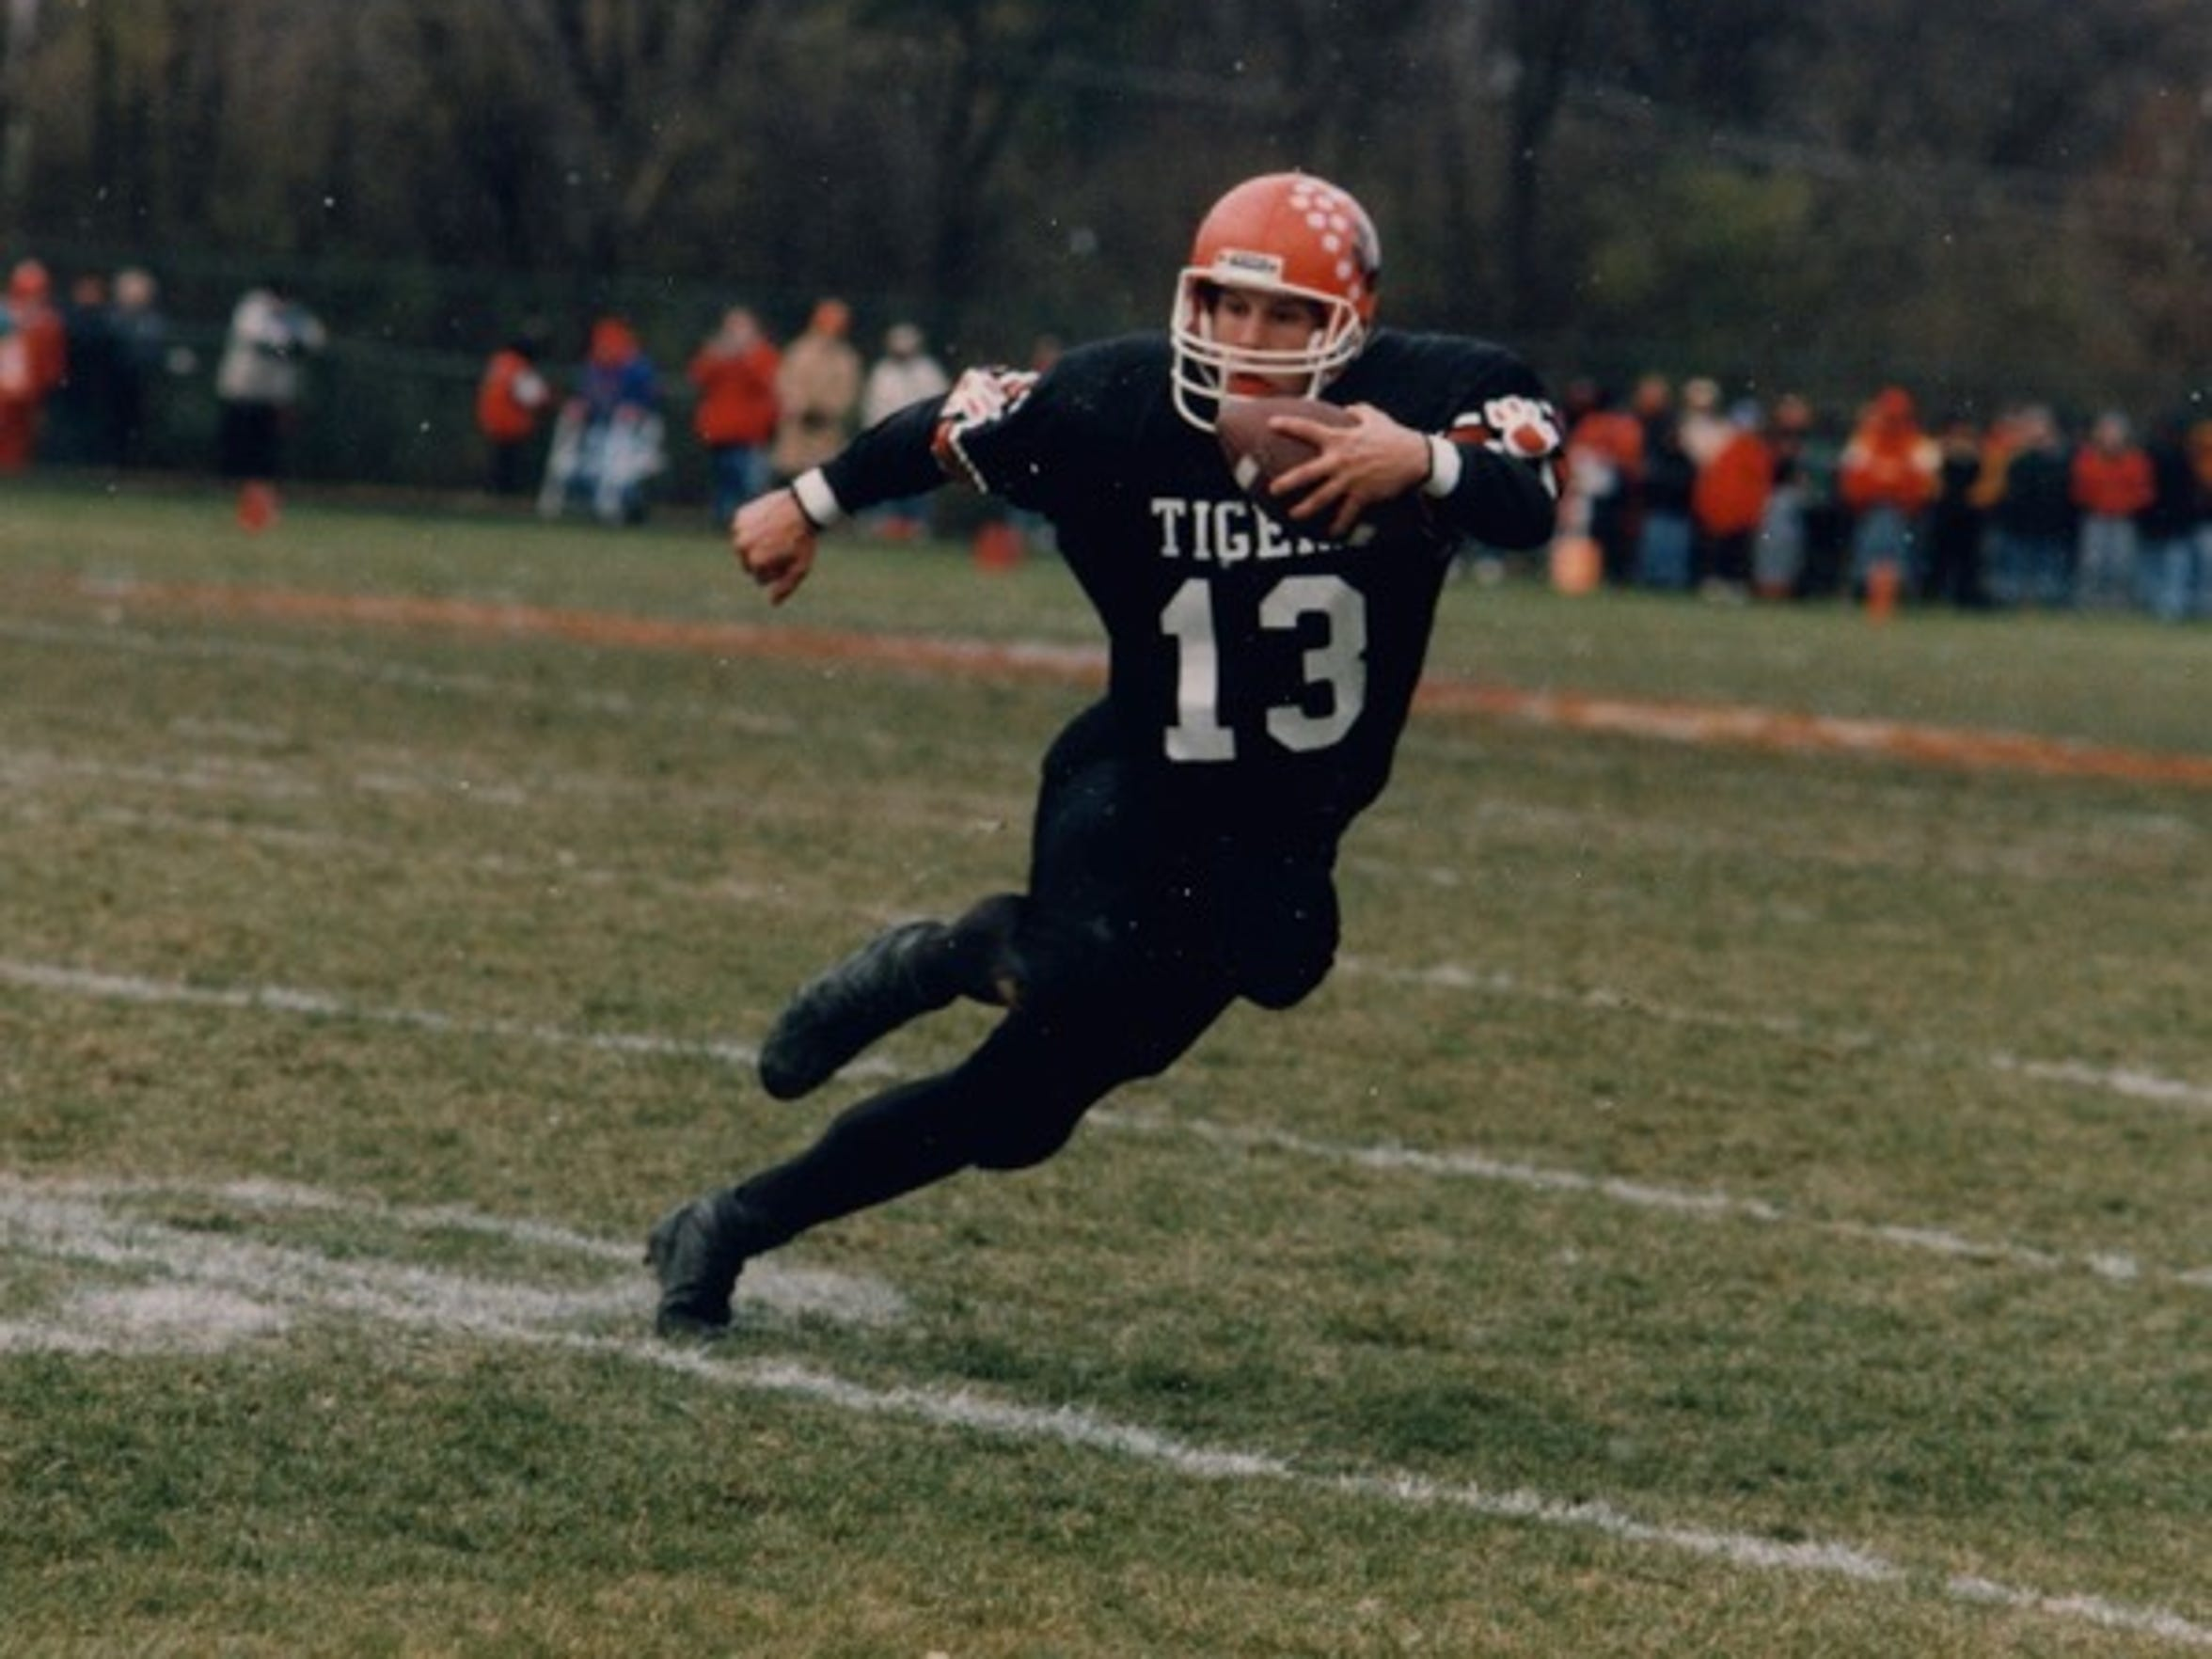 Western Michigan football coach Tim Lester became a star quarterback for Wheaton Warrenville South Tigers.